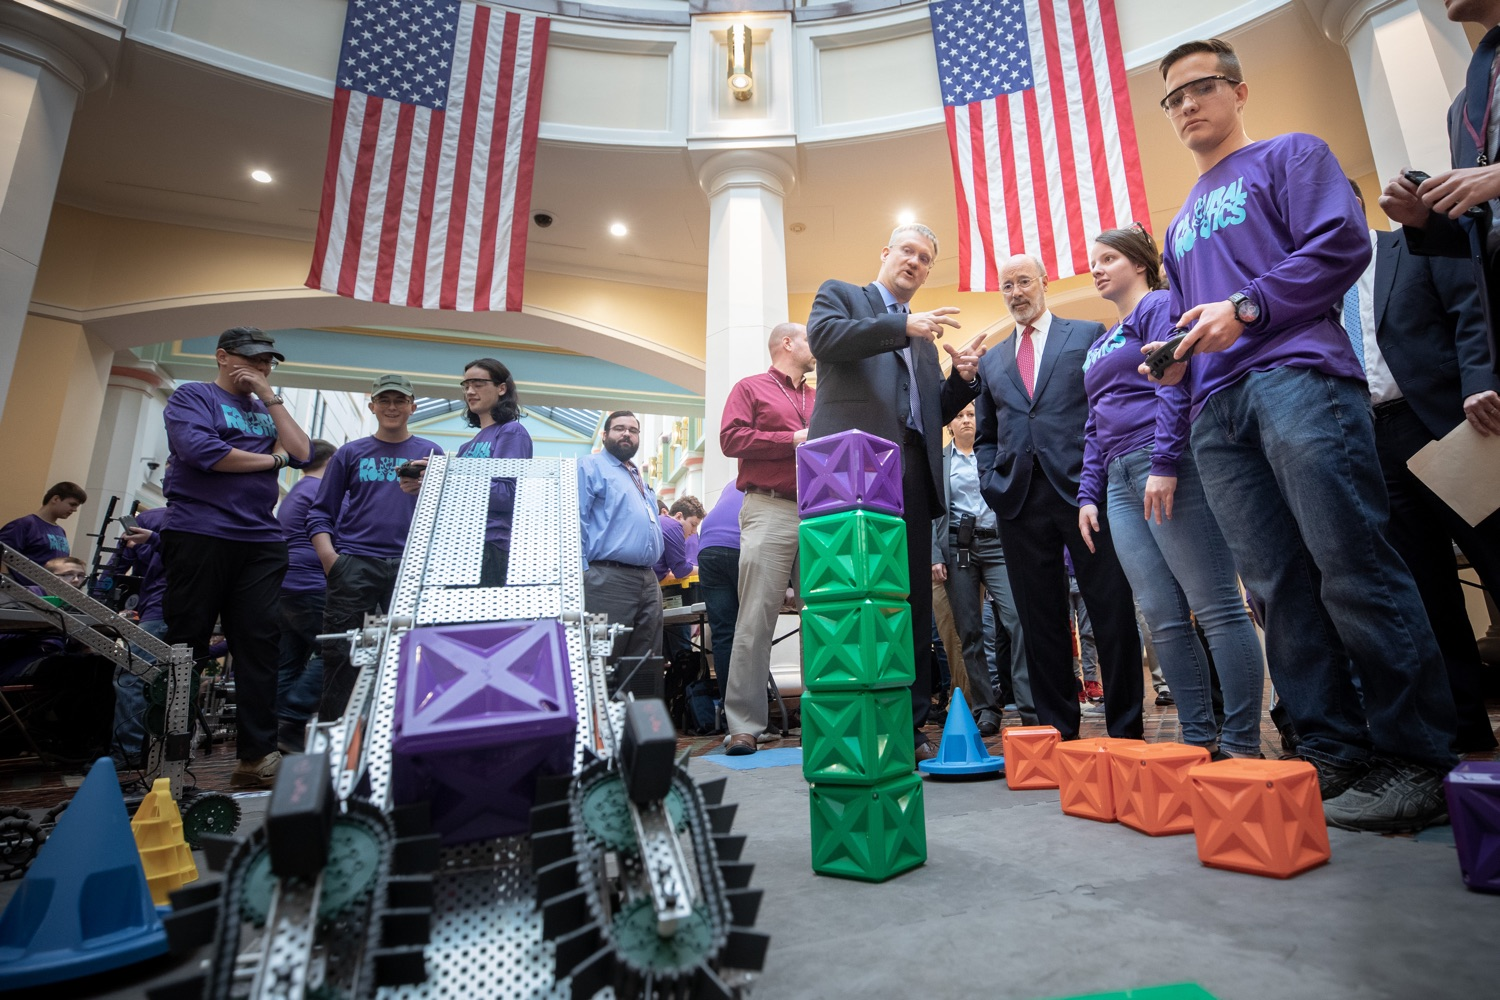 """<a href=""""https://filesource.wostreaming.net/commonwealthofpa/photo/17587_gov_pasmart_rural_robotics_dz_023.jpg"""" target=""""_blank"""">⇣Download Photo<br></a>Pennsylvania Governor Tom Wolf meeting with students at the robotics demonstration.Celebrating the success of the PAsmart workforce development program to create educational opportunities at schools across the commonwealth, Governor Tom Wolf welcomed more than 50 students from the Pennsylvania Rural Robotics Initiative to the Capitol today. The students from nine western Pennsylvania school districts showcased their skills in coding, robotics and drone technology. The Wolf administration awarded the initiative a $299,000 PAsmart Advancing Grant earlier this year. Harrisburg, PA  Tuesday, November 12, 2019"""